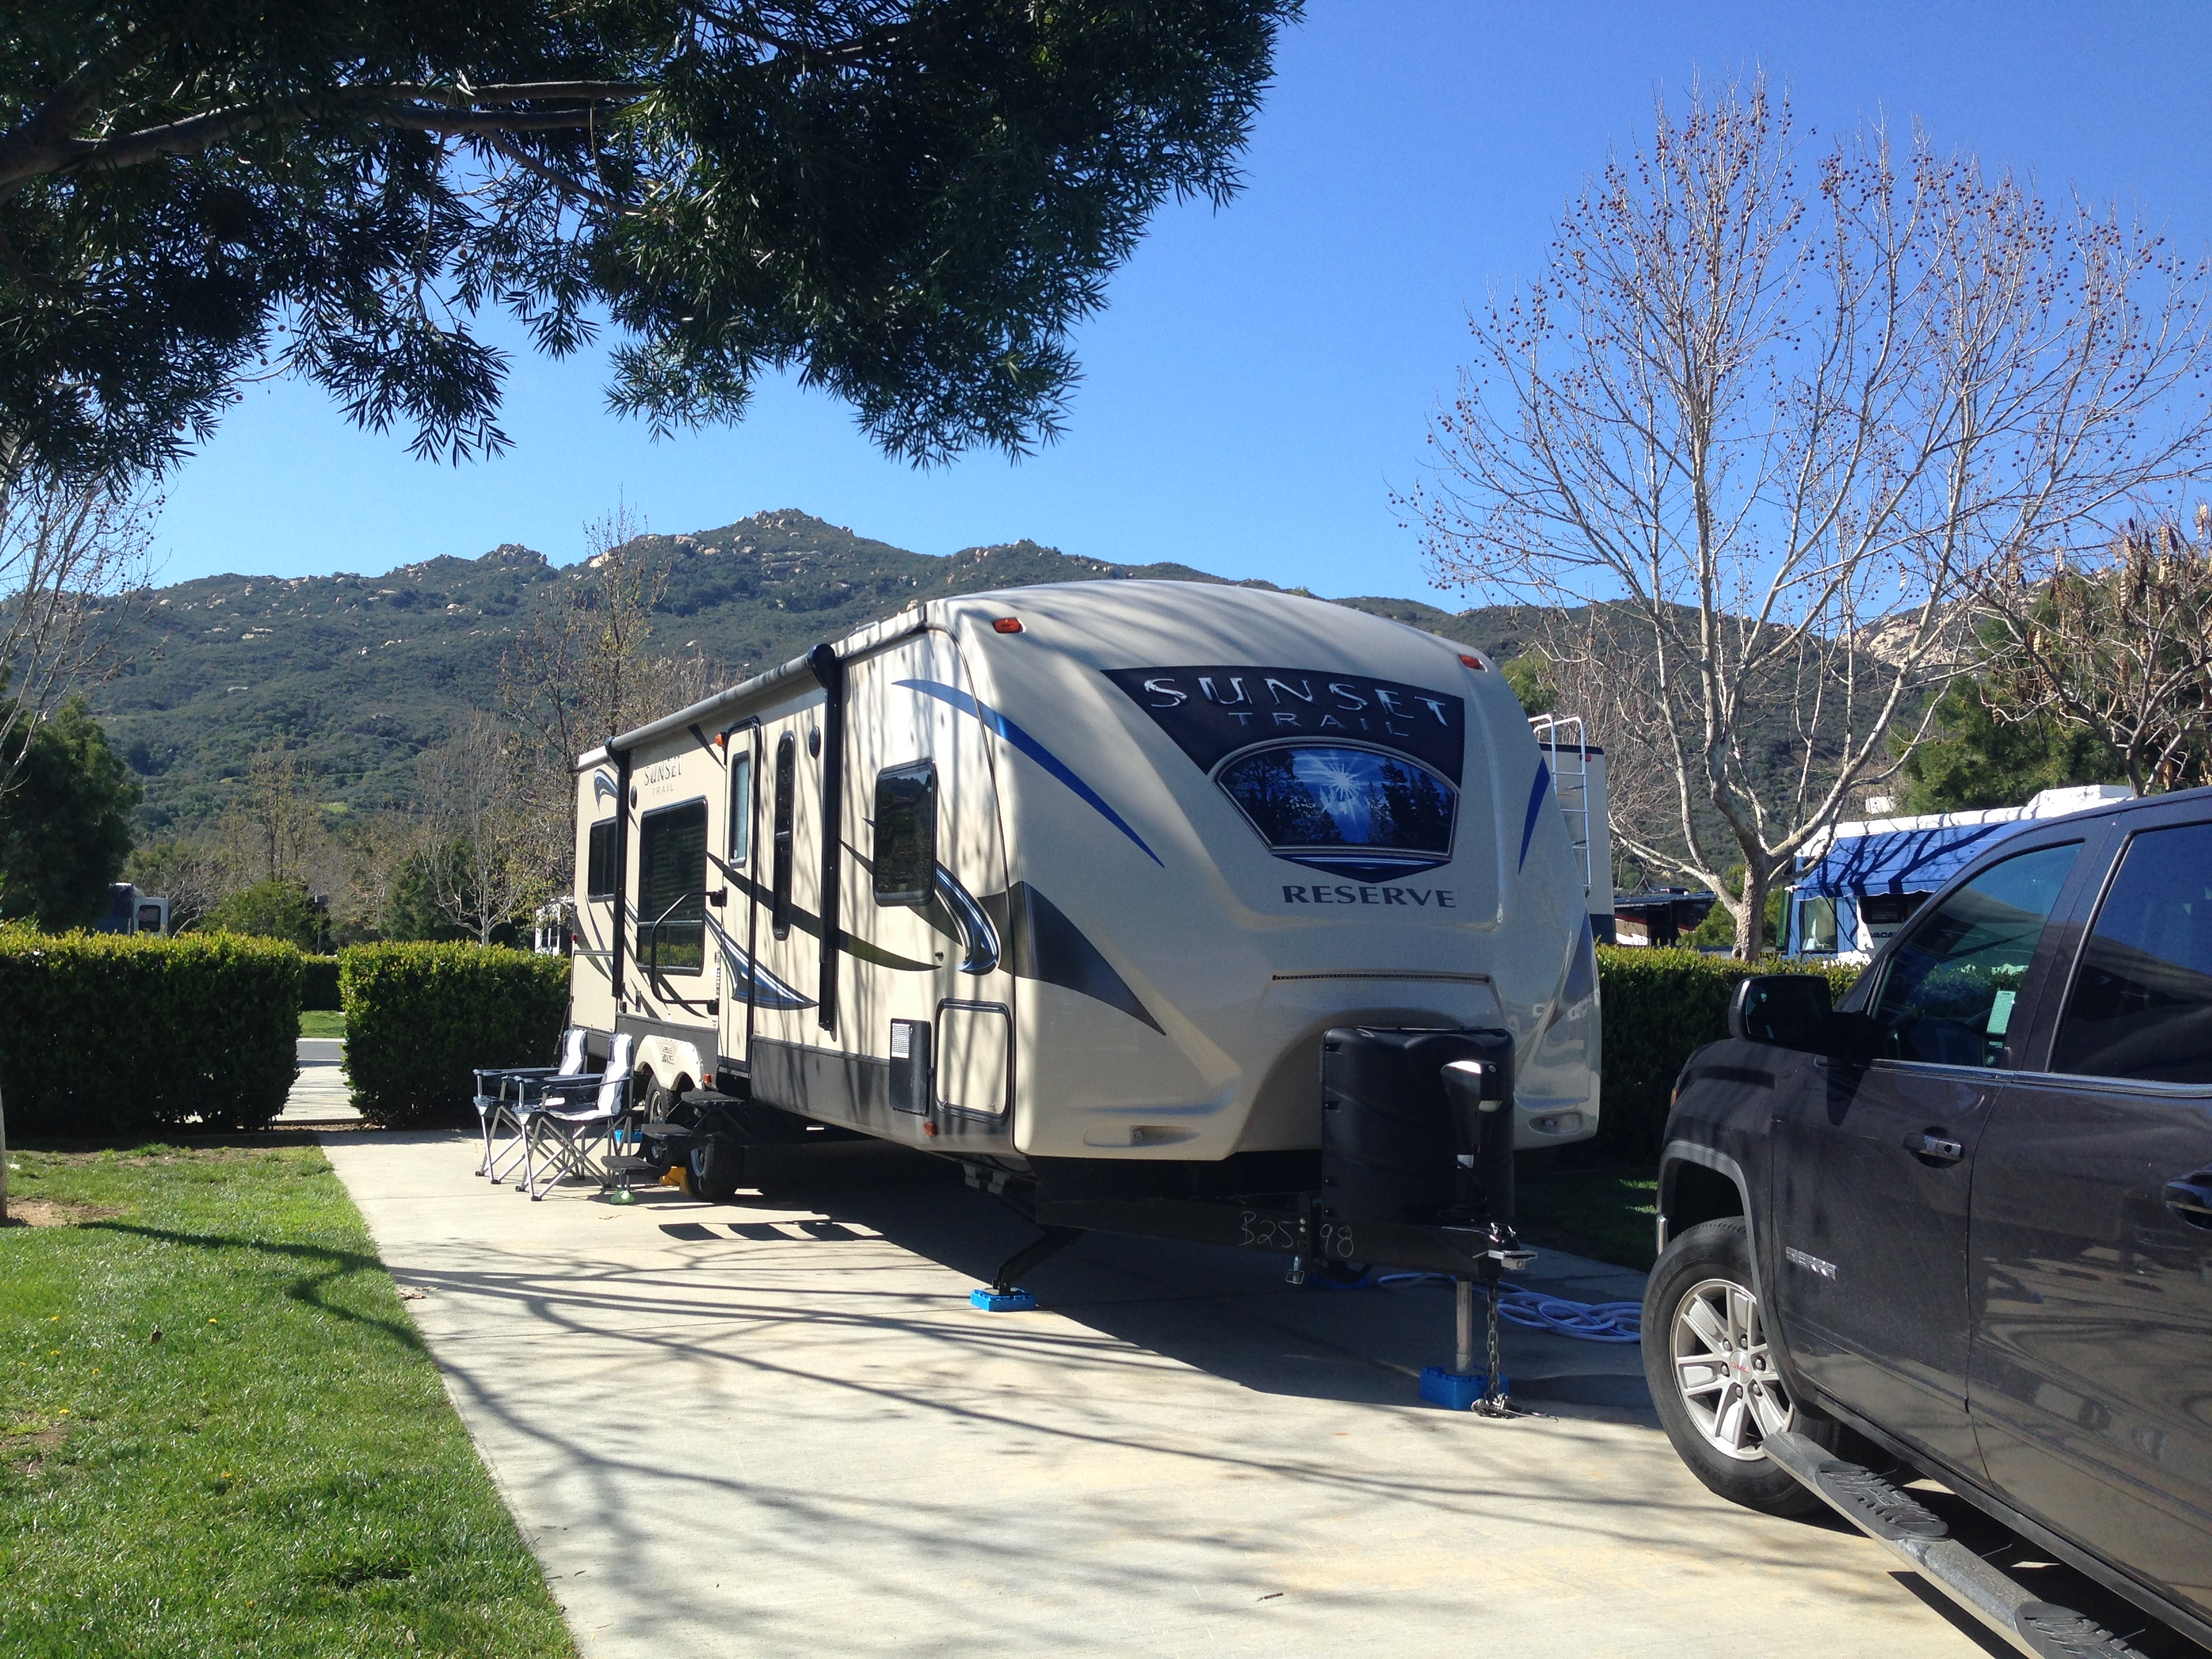 One of our lovely sites at the Pechanga RV Resort (loved the mountain backdrop!)